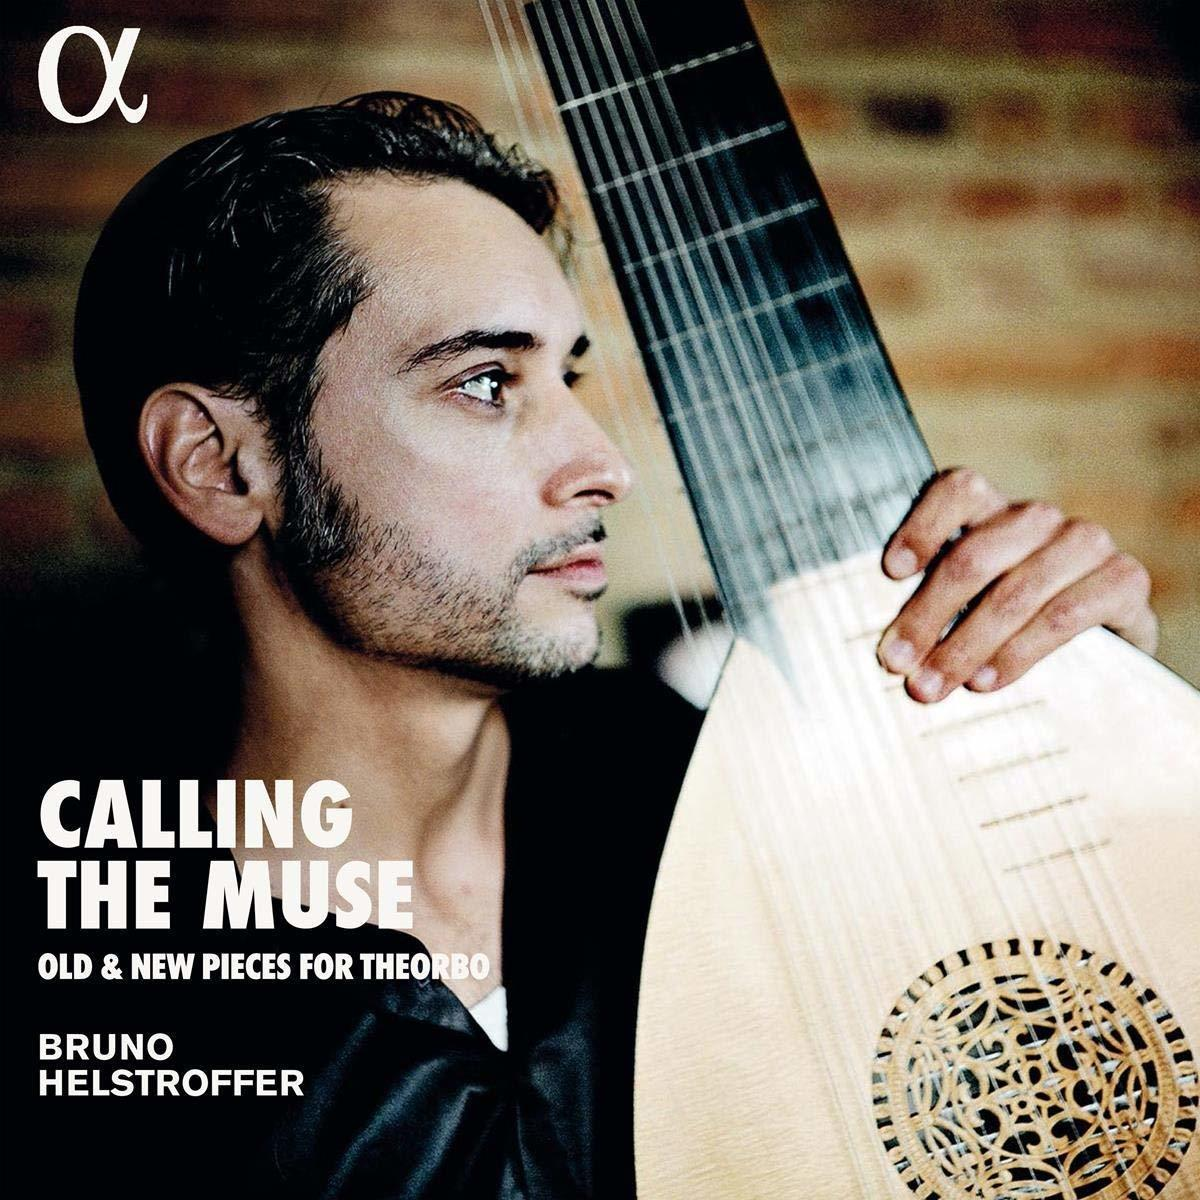 Calling The Muse: Old & New Pieces for Theorbo